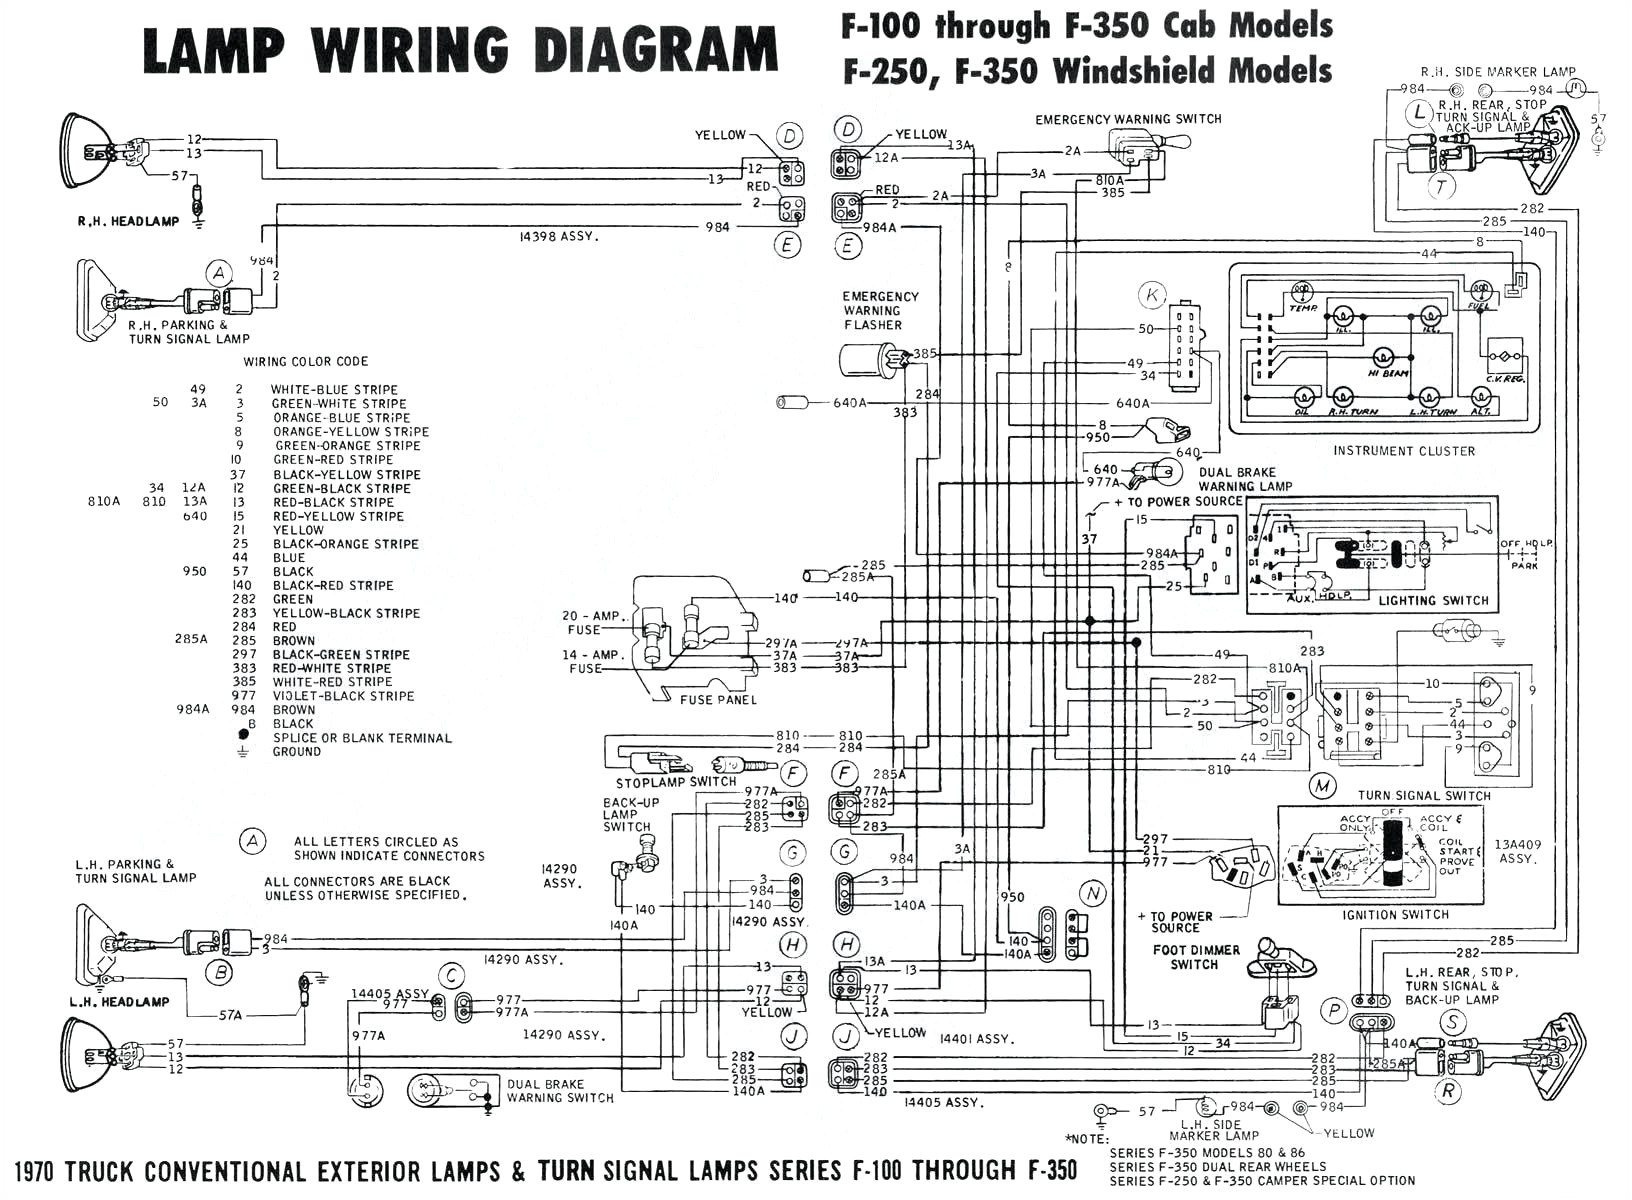 super switchquot s type wiring kit wiring diagram article mf 282 wiring diagram